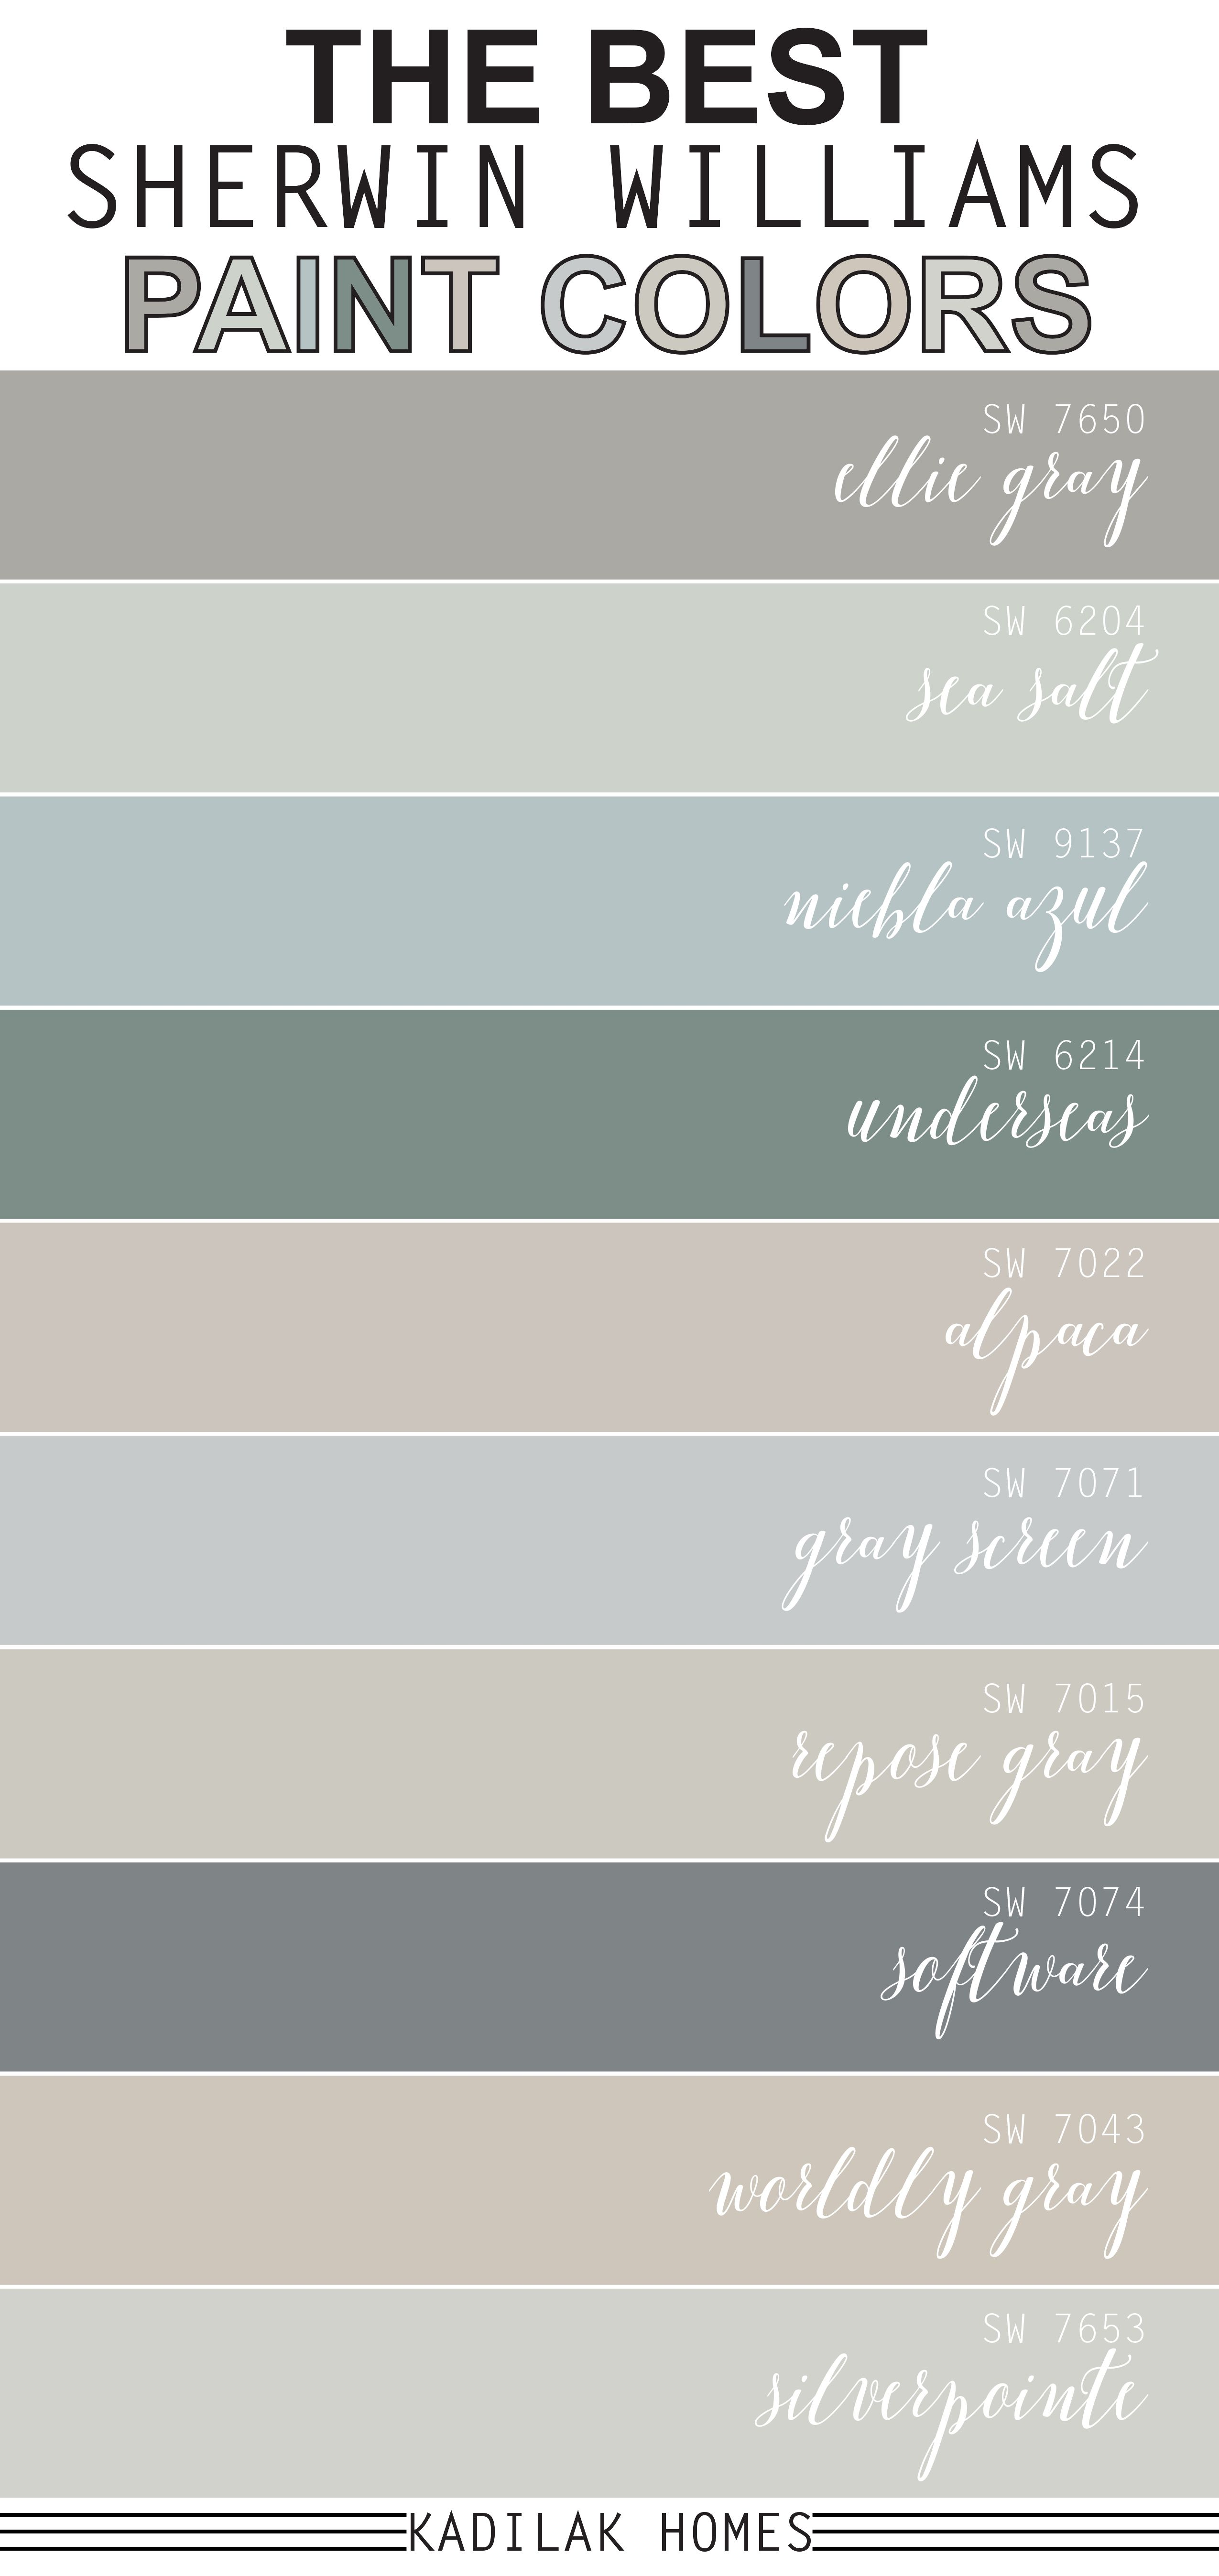 The Best Sherwin Williams Paint Colors Best Sherwin Williams Paint Sherwin Williams Paint Colors Paint Colors For Home